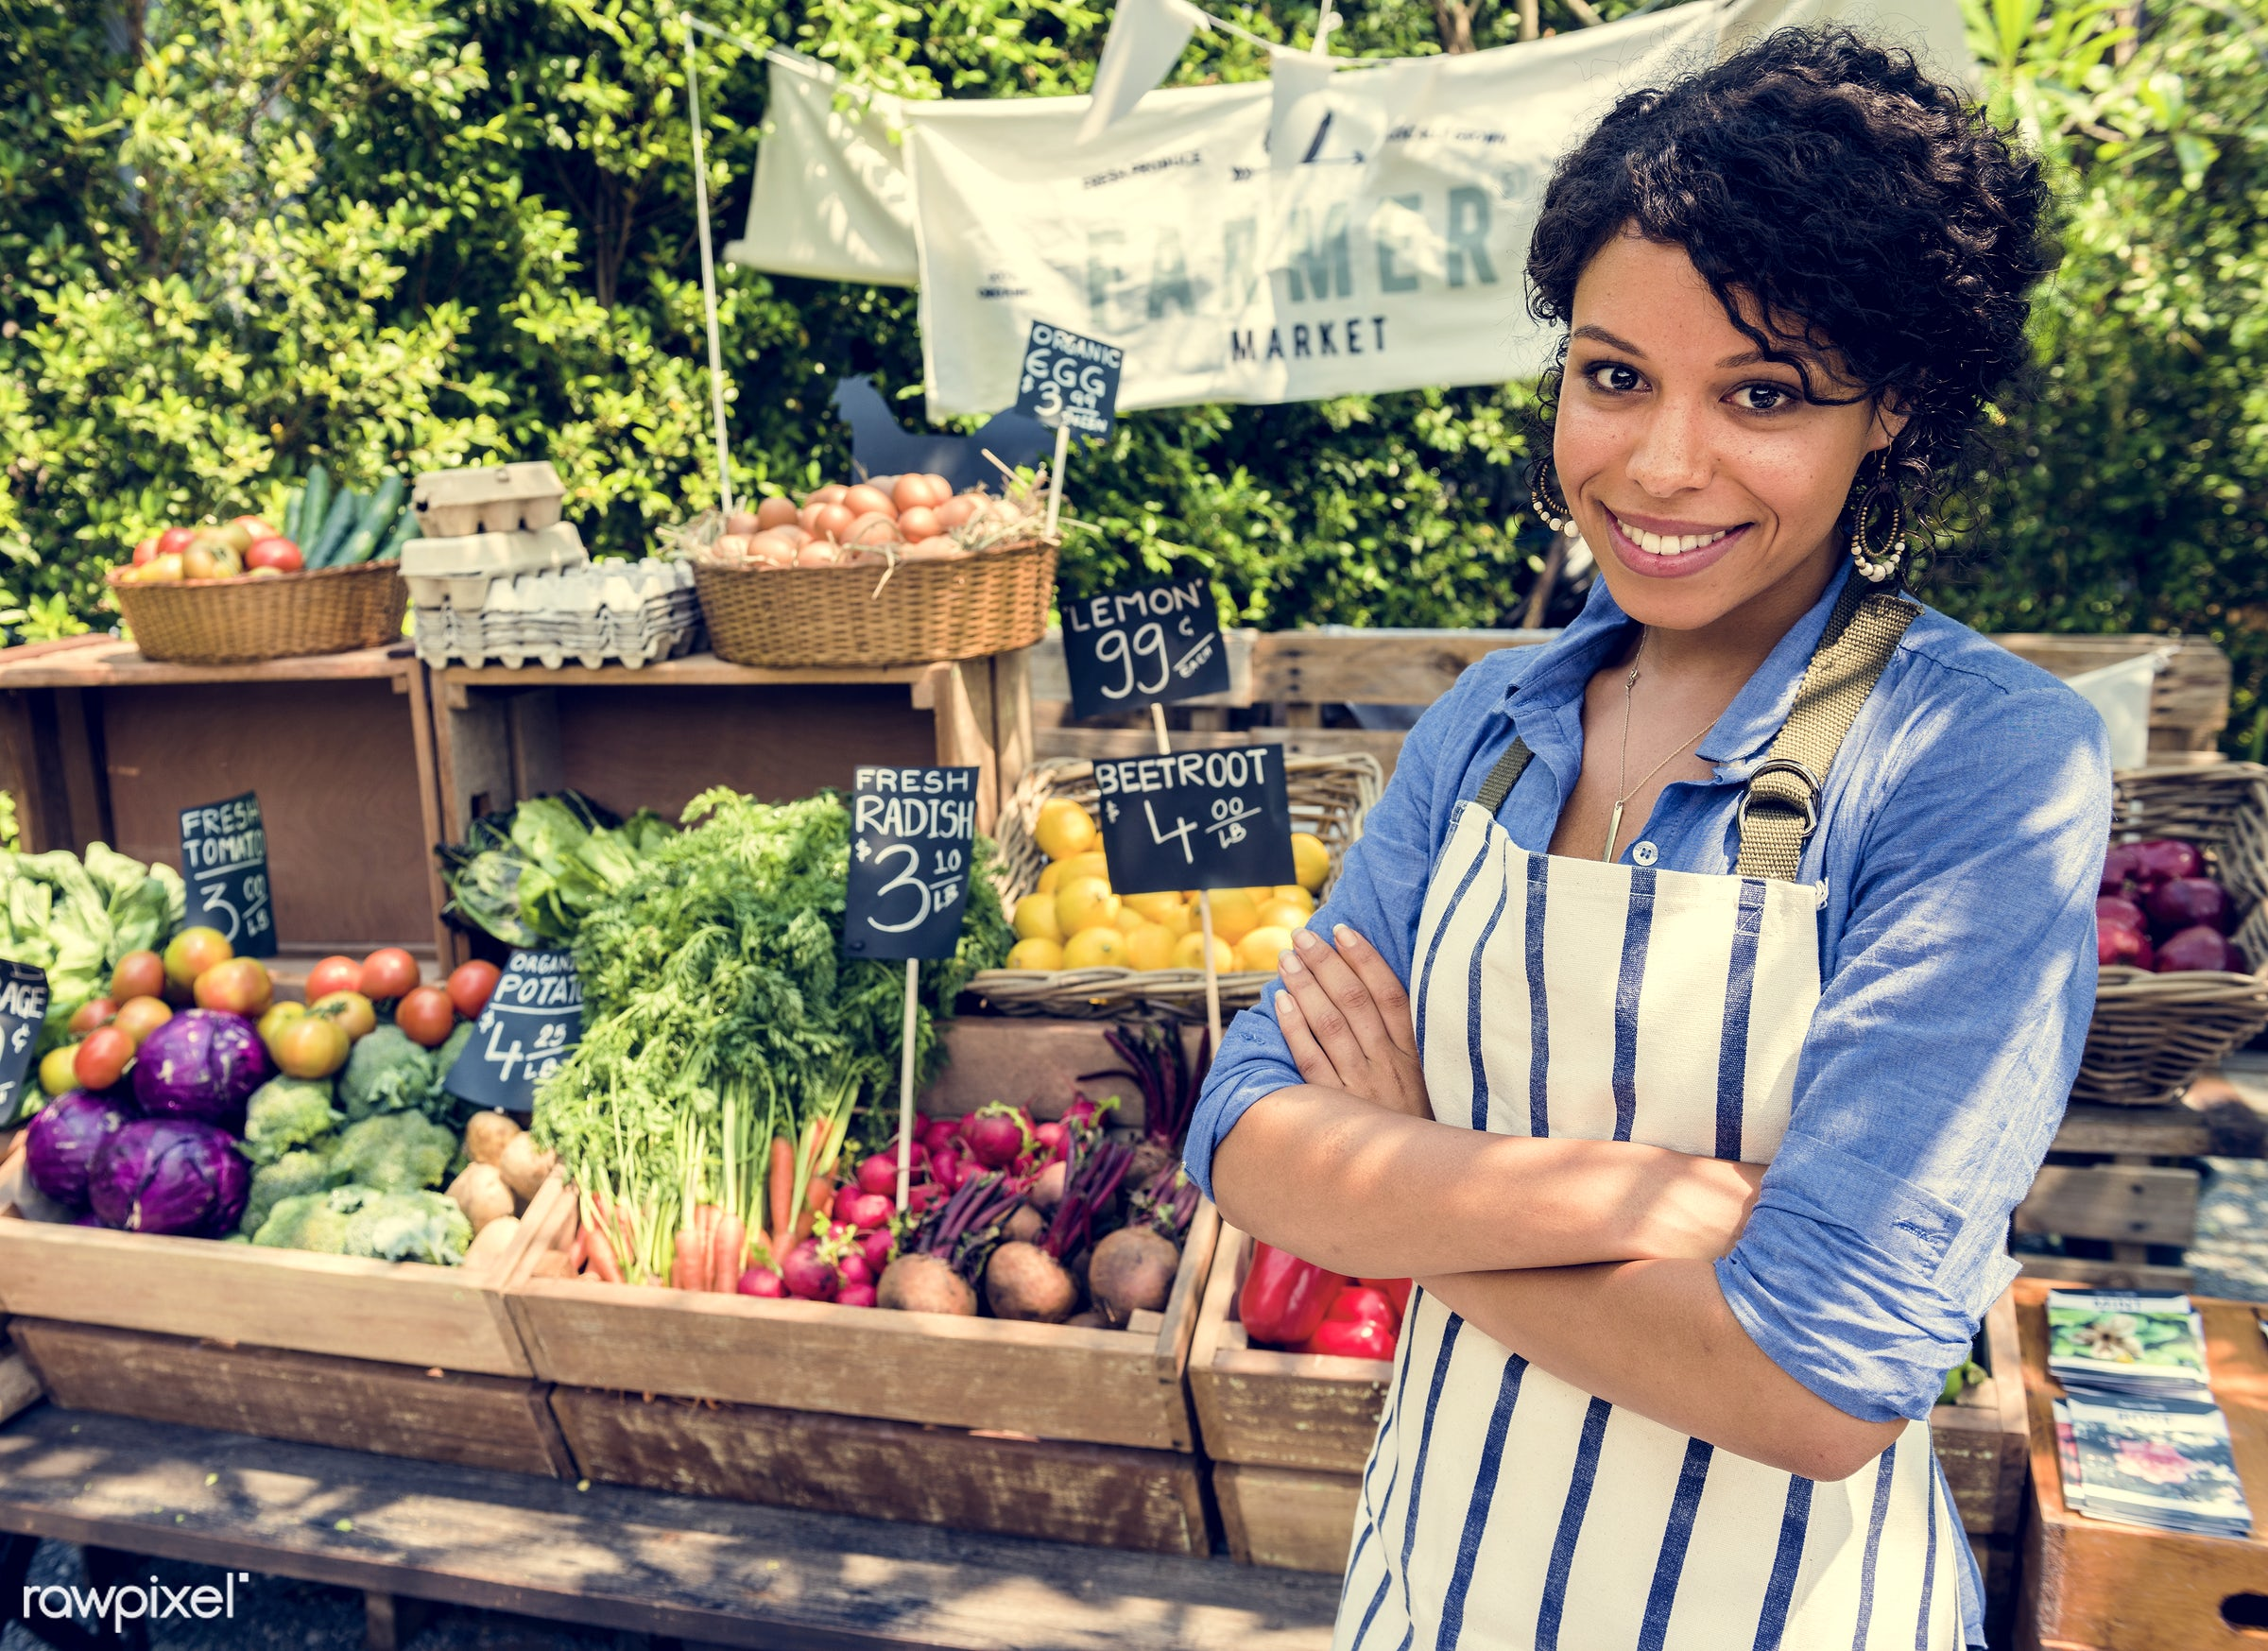 grocery, person, stall, store, people, woman, lifestyle, smiling, fruit, selling, health, nutrition, market, gardener, food...